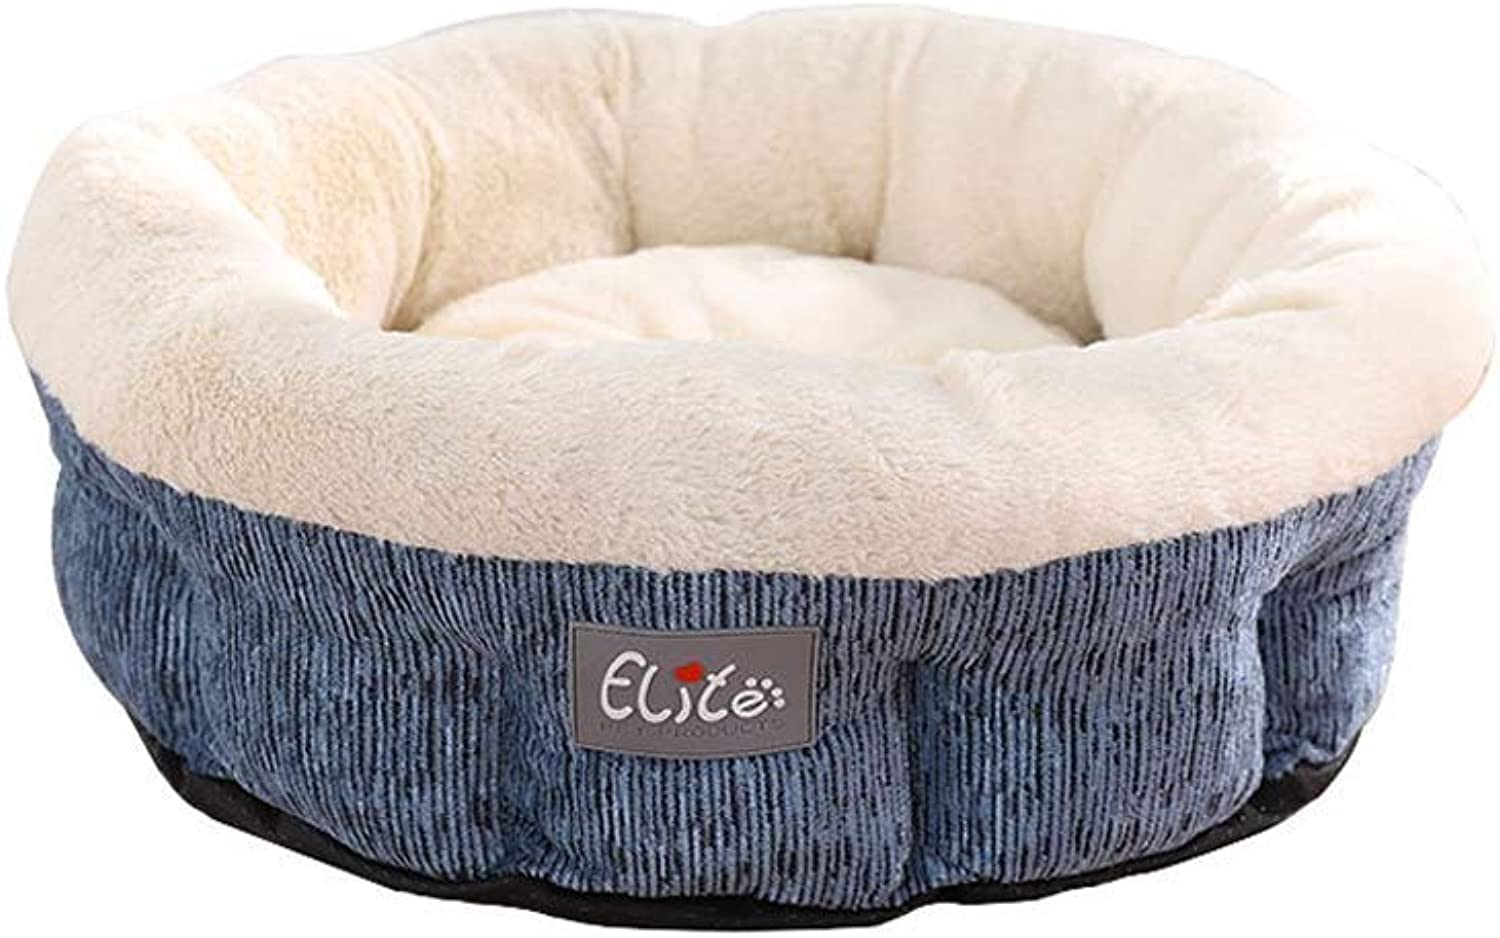 Cat Nest Pet Puppy Bed Sleeping Super Soft Thickening Warm Luxury Kitten Dog Cozy Mat Cushion, Small And Medium Pet Supplies(bluee  M, L) (Size   L)